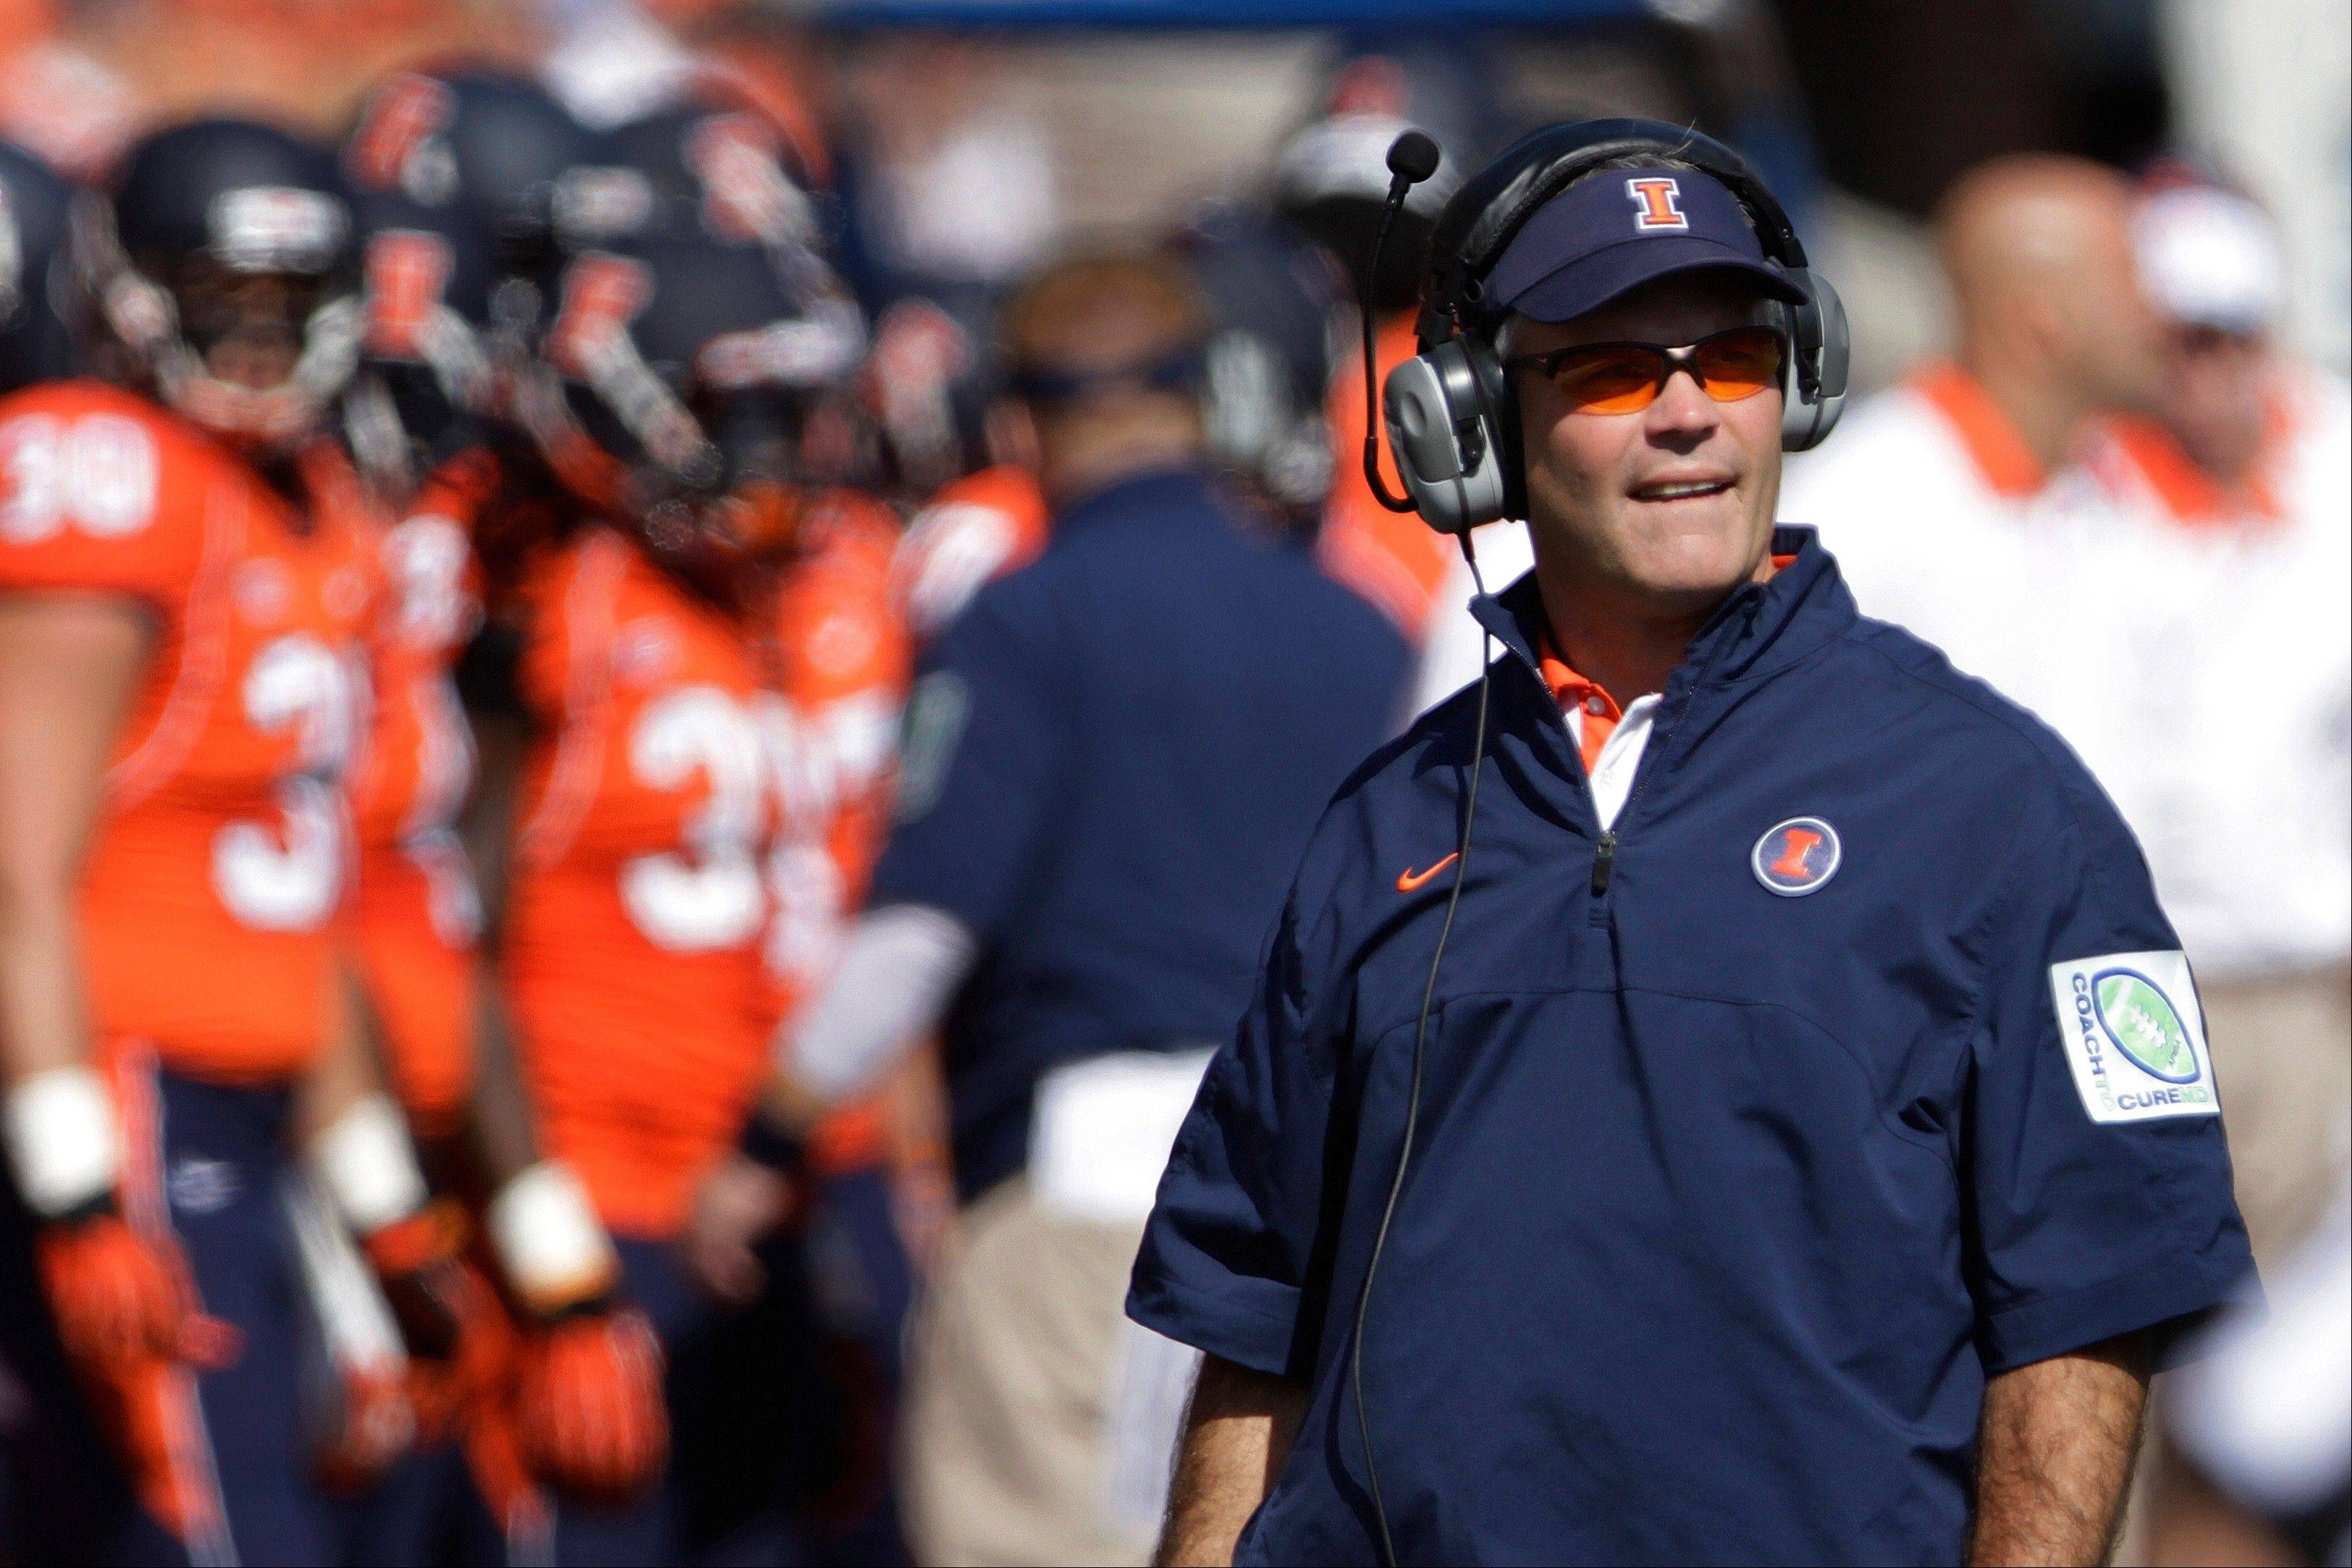 Illinois head coach Tim Beckman looks on from the sidelines Saturday during the second half against Penn State last week in Champaign. Penn State defeated Illinois 35-7.